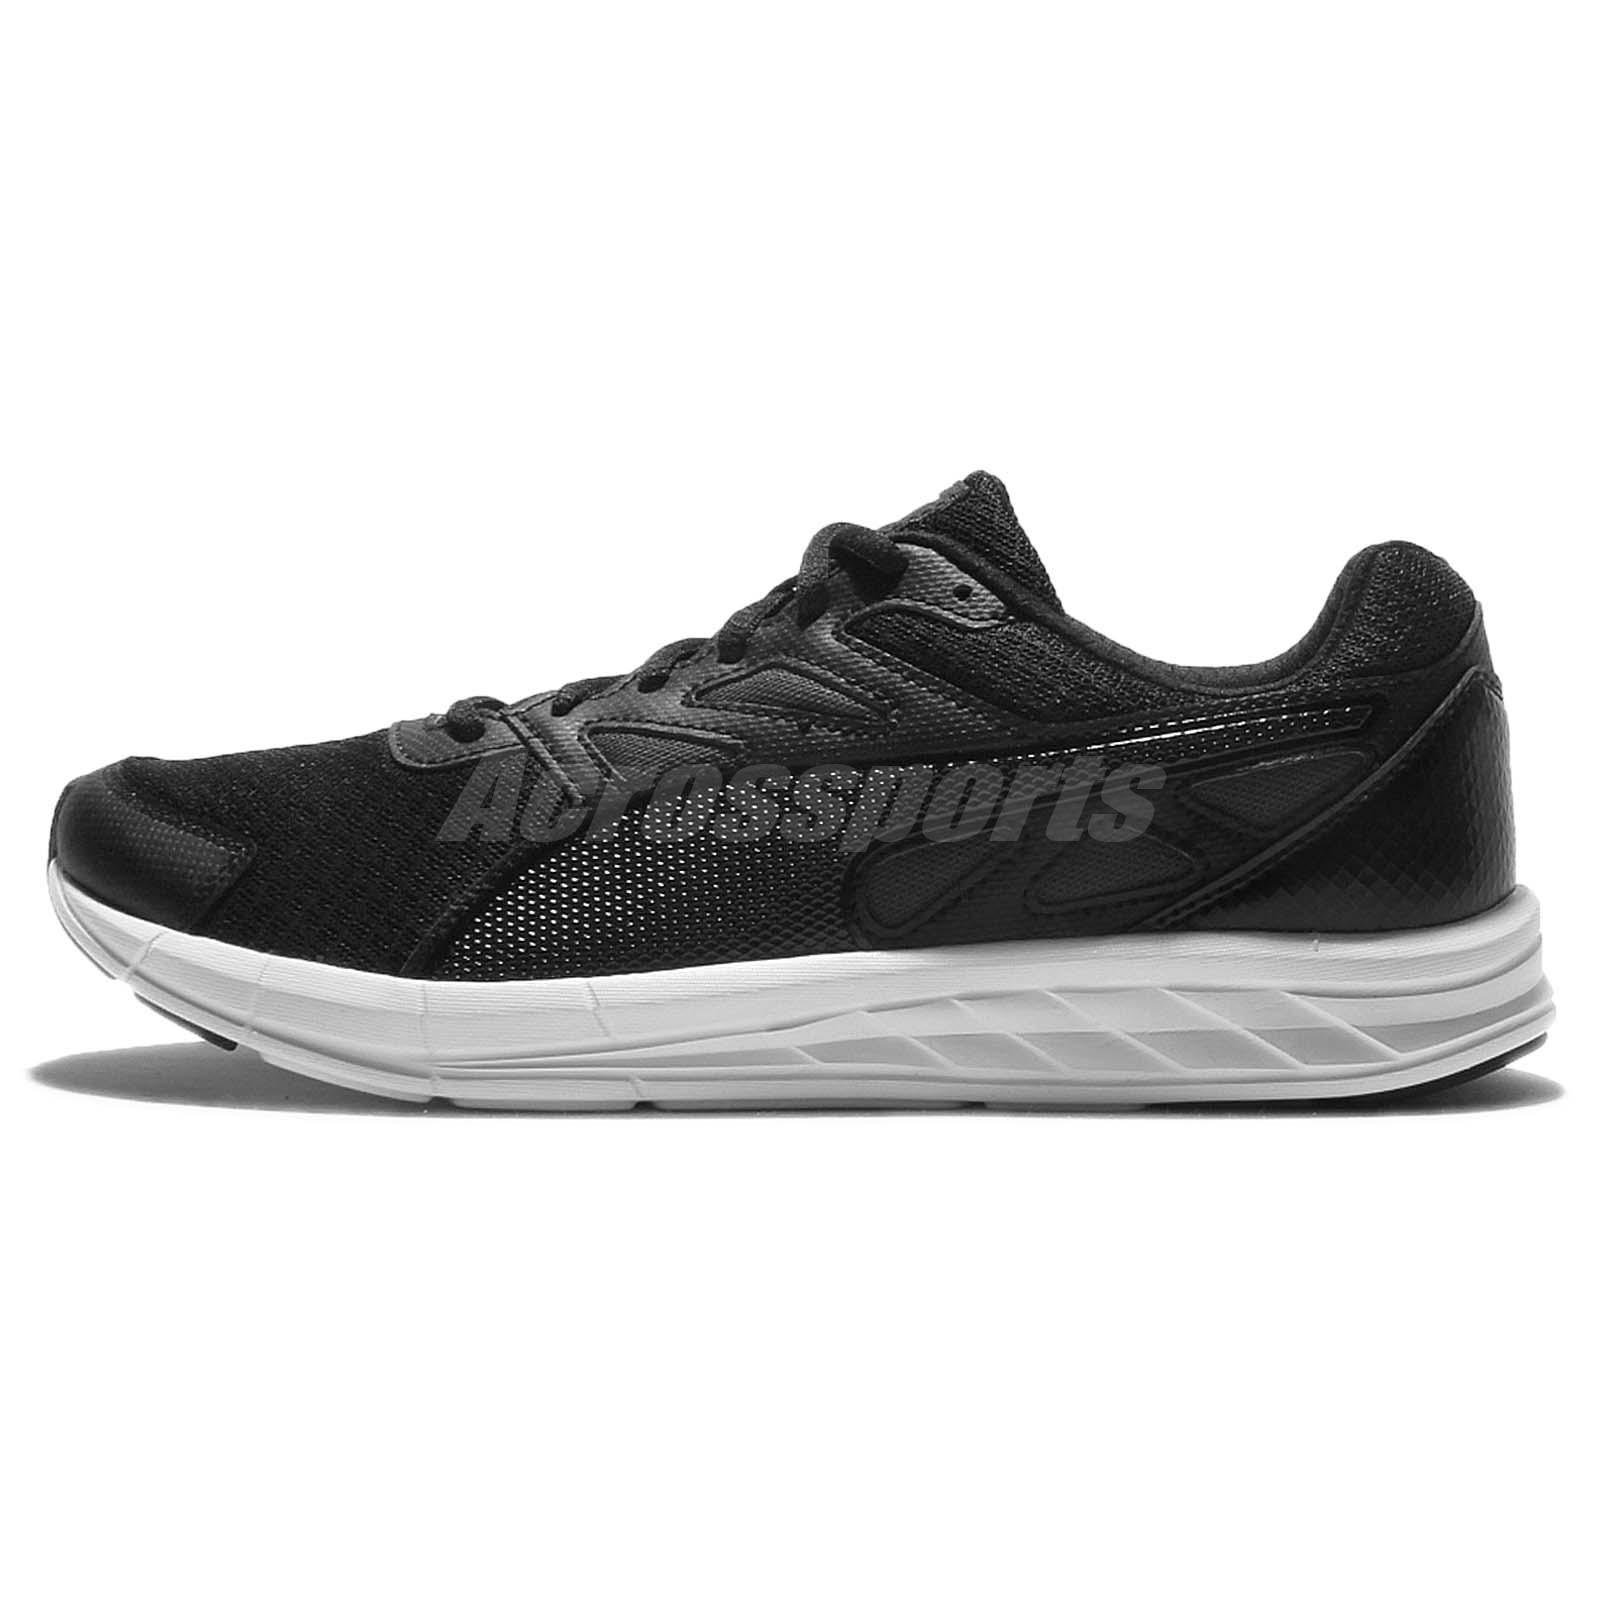 Puma Driver Black White Mens Running Shoes Sneakers 189061-05